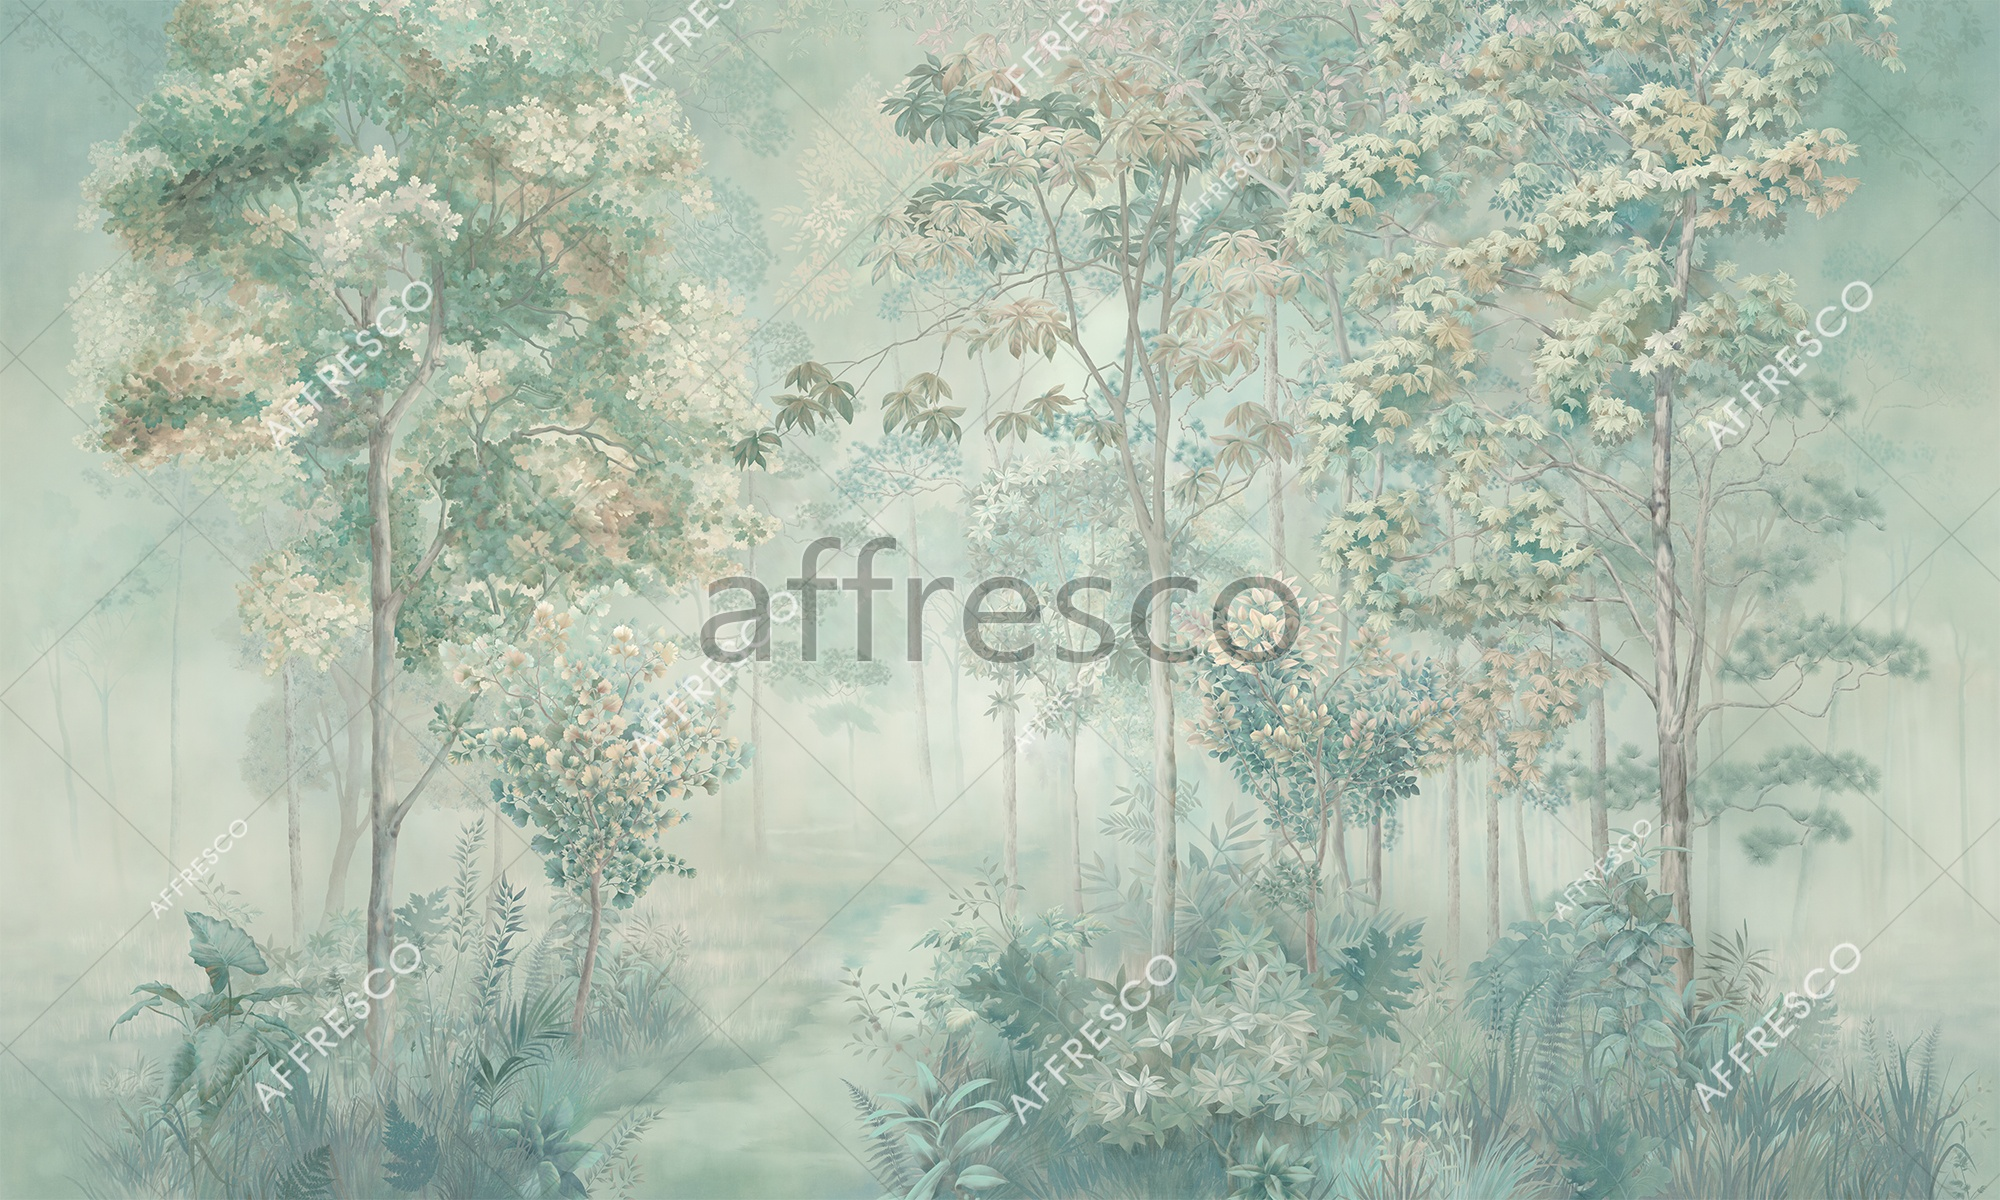 AF527-COL3 | Atmosphere | Affresco Factory